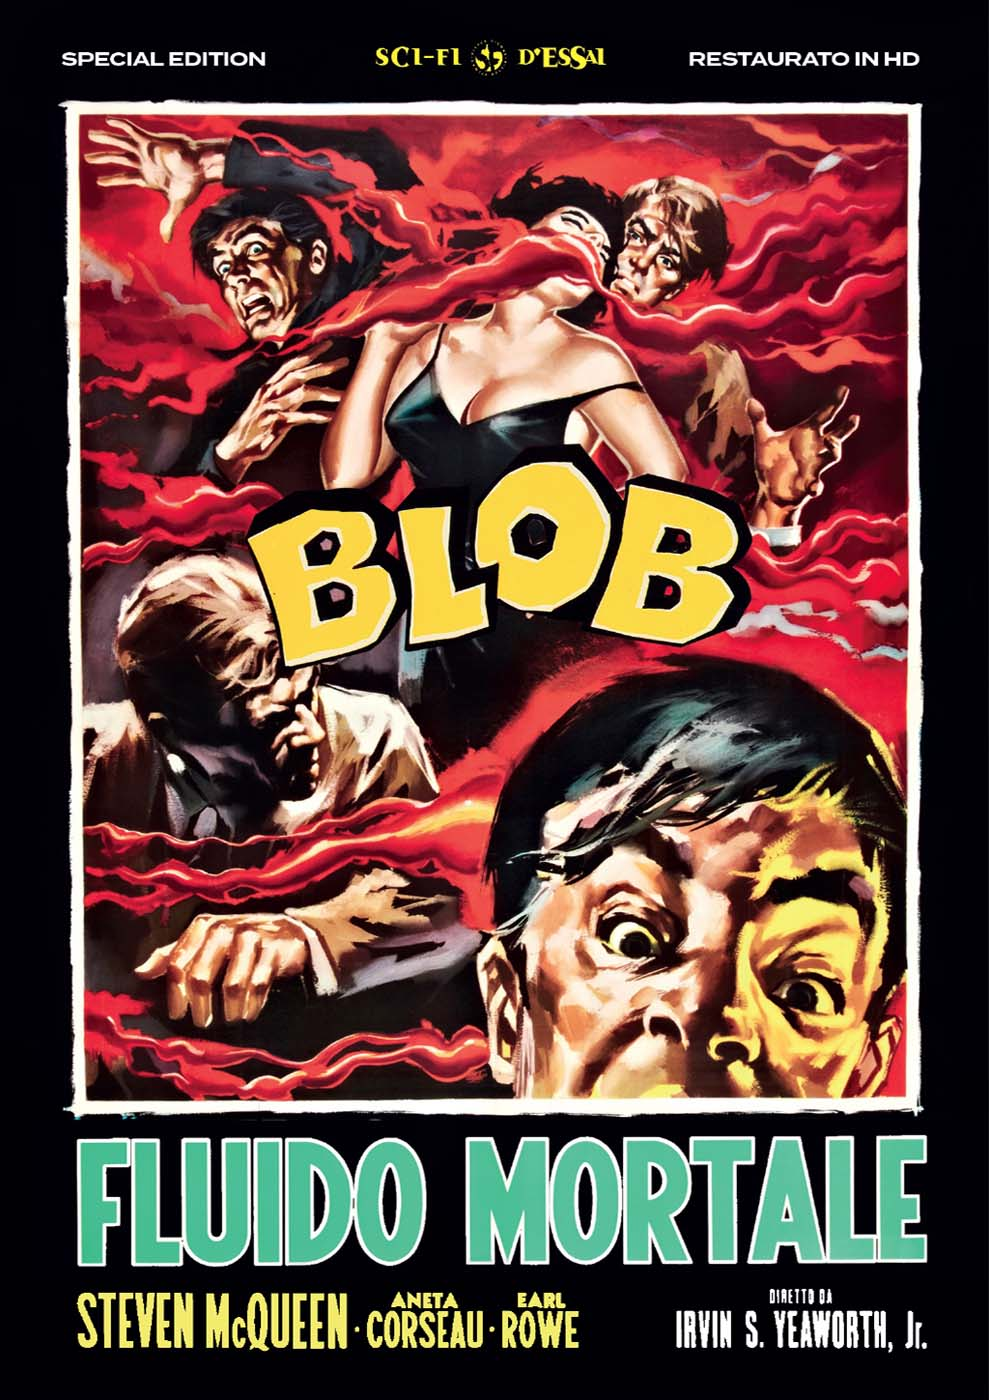 BLOB - FLUIDO MORTALE - SPECIAL EDITION (RESTAURATO IN HD) (DVD)